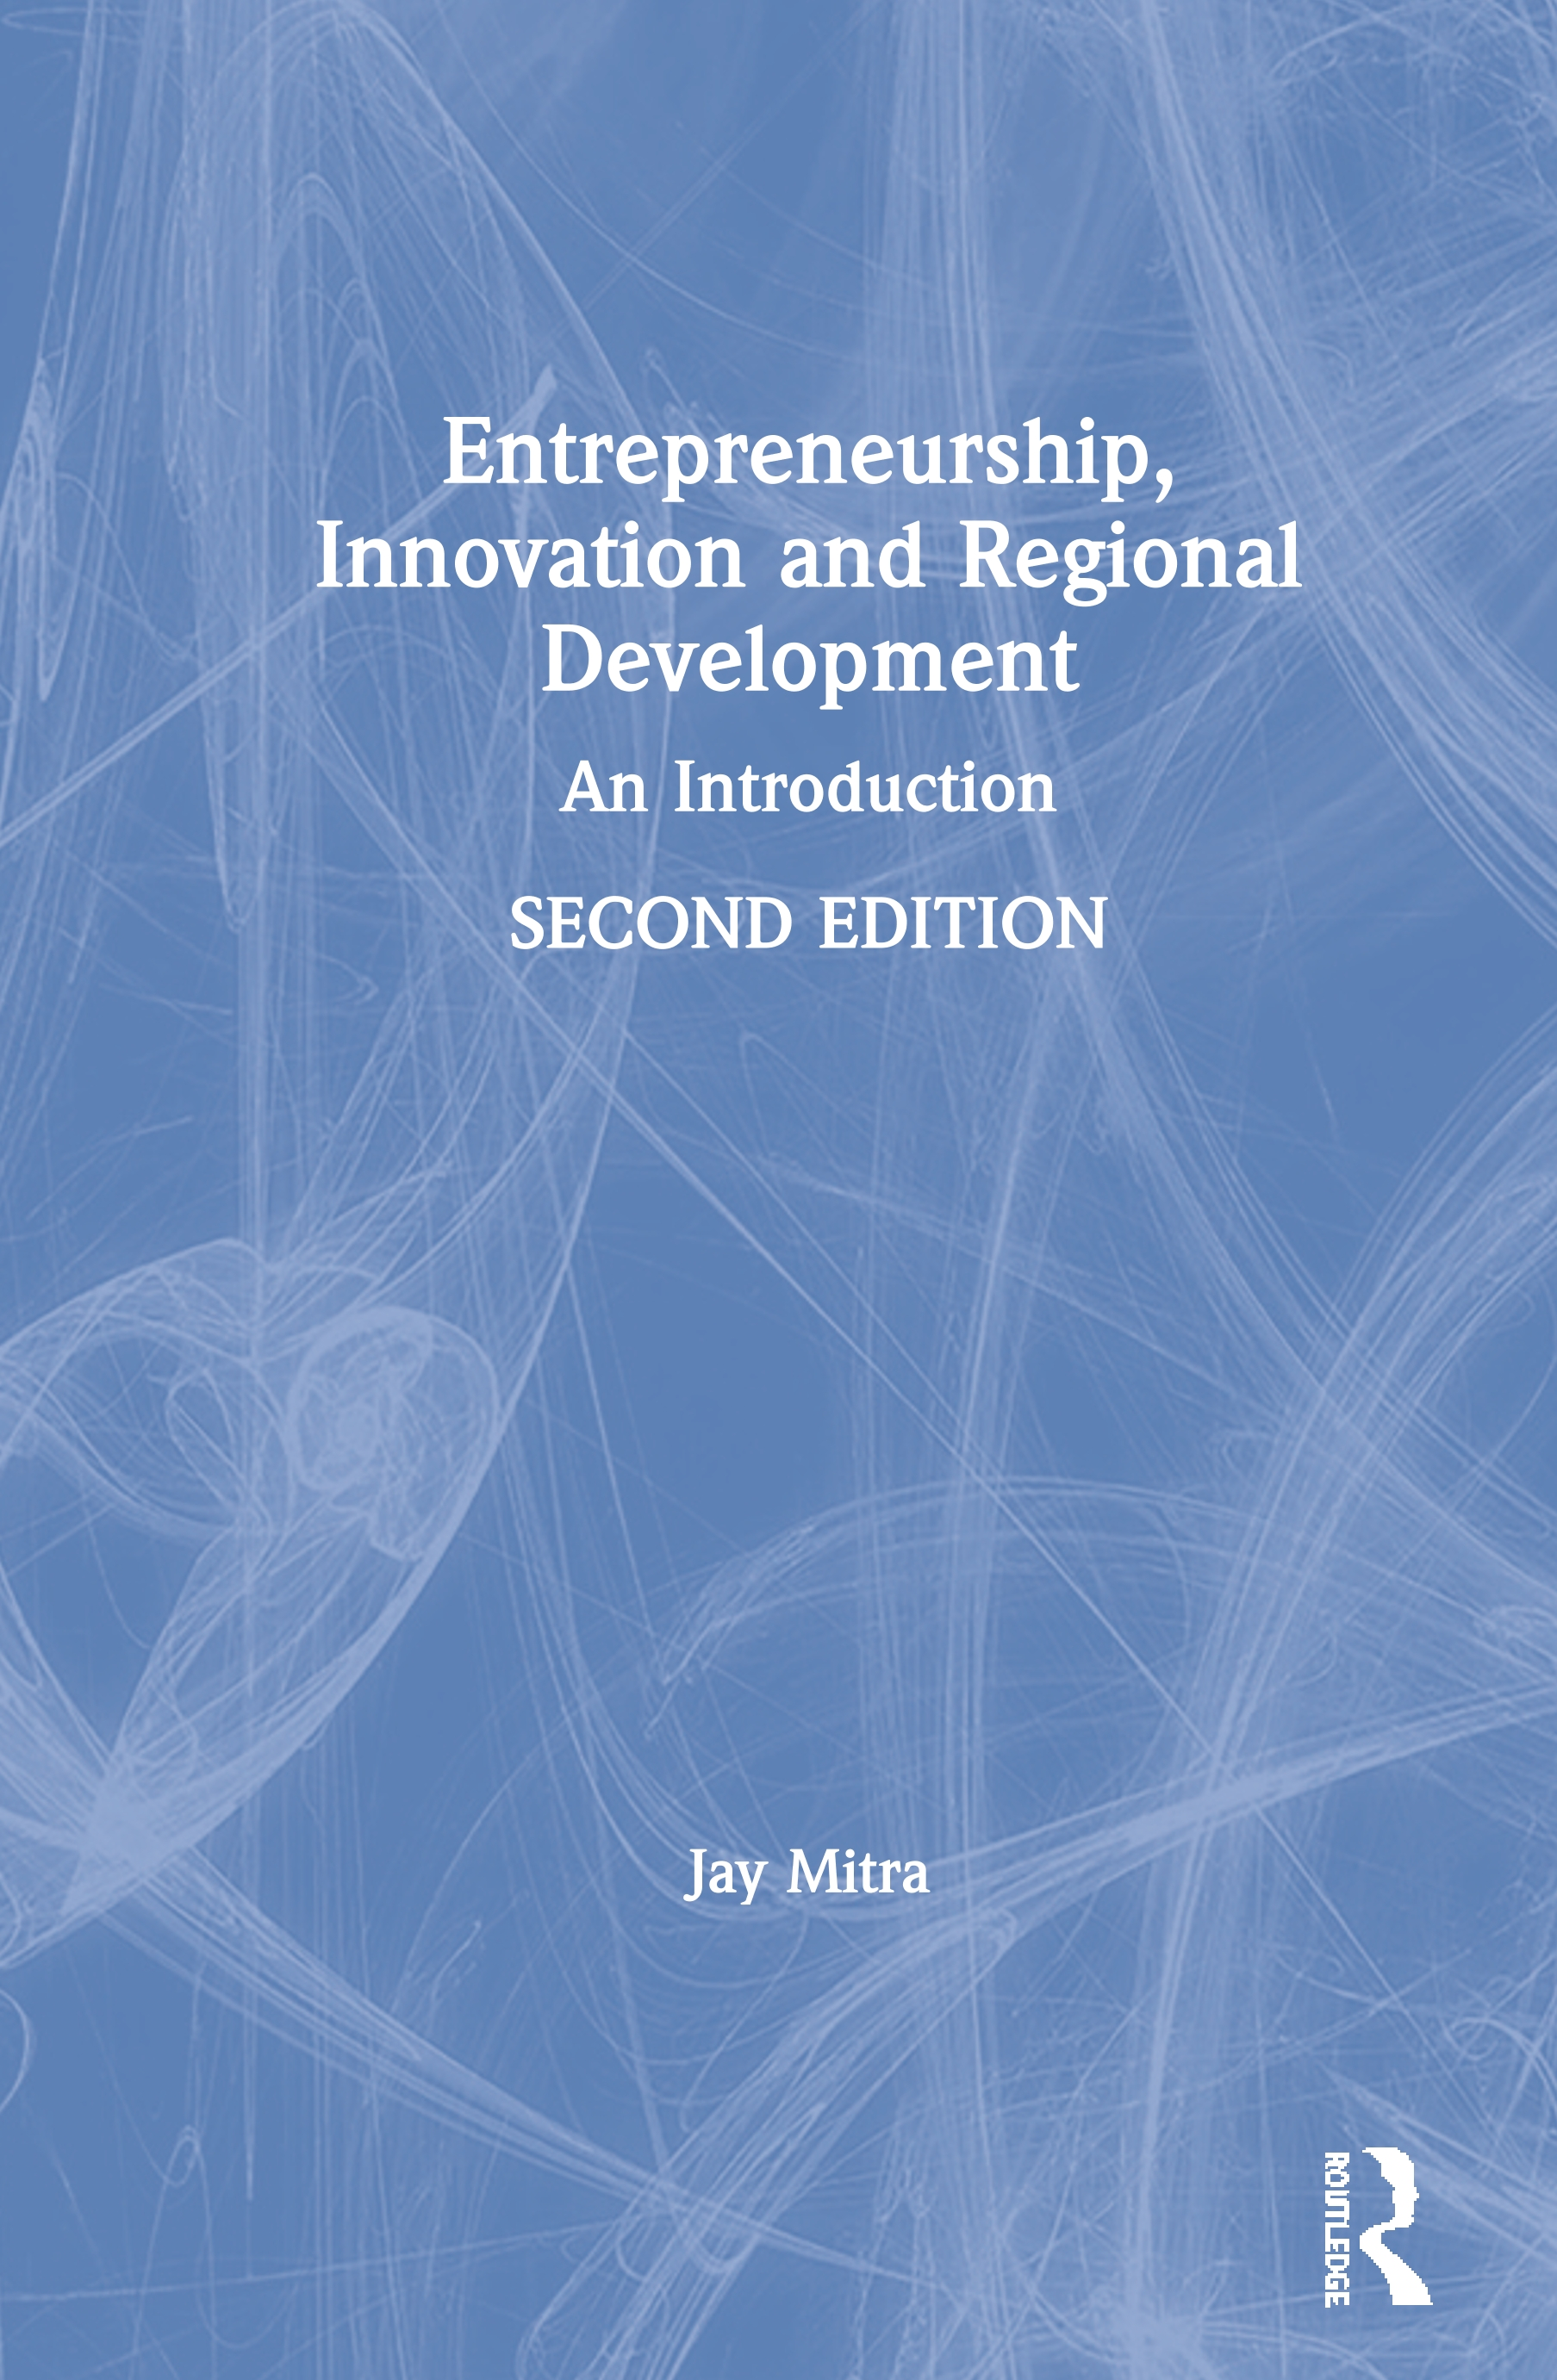 The social dimensions of entrepreneurship